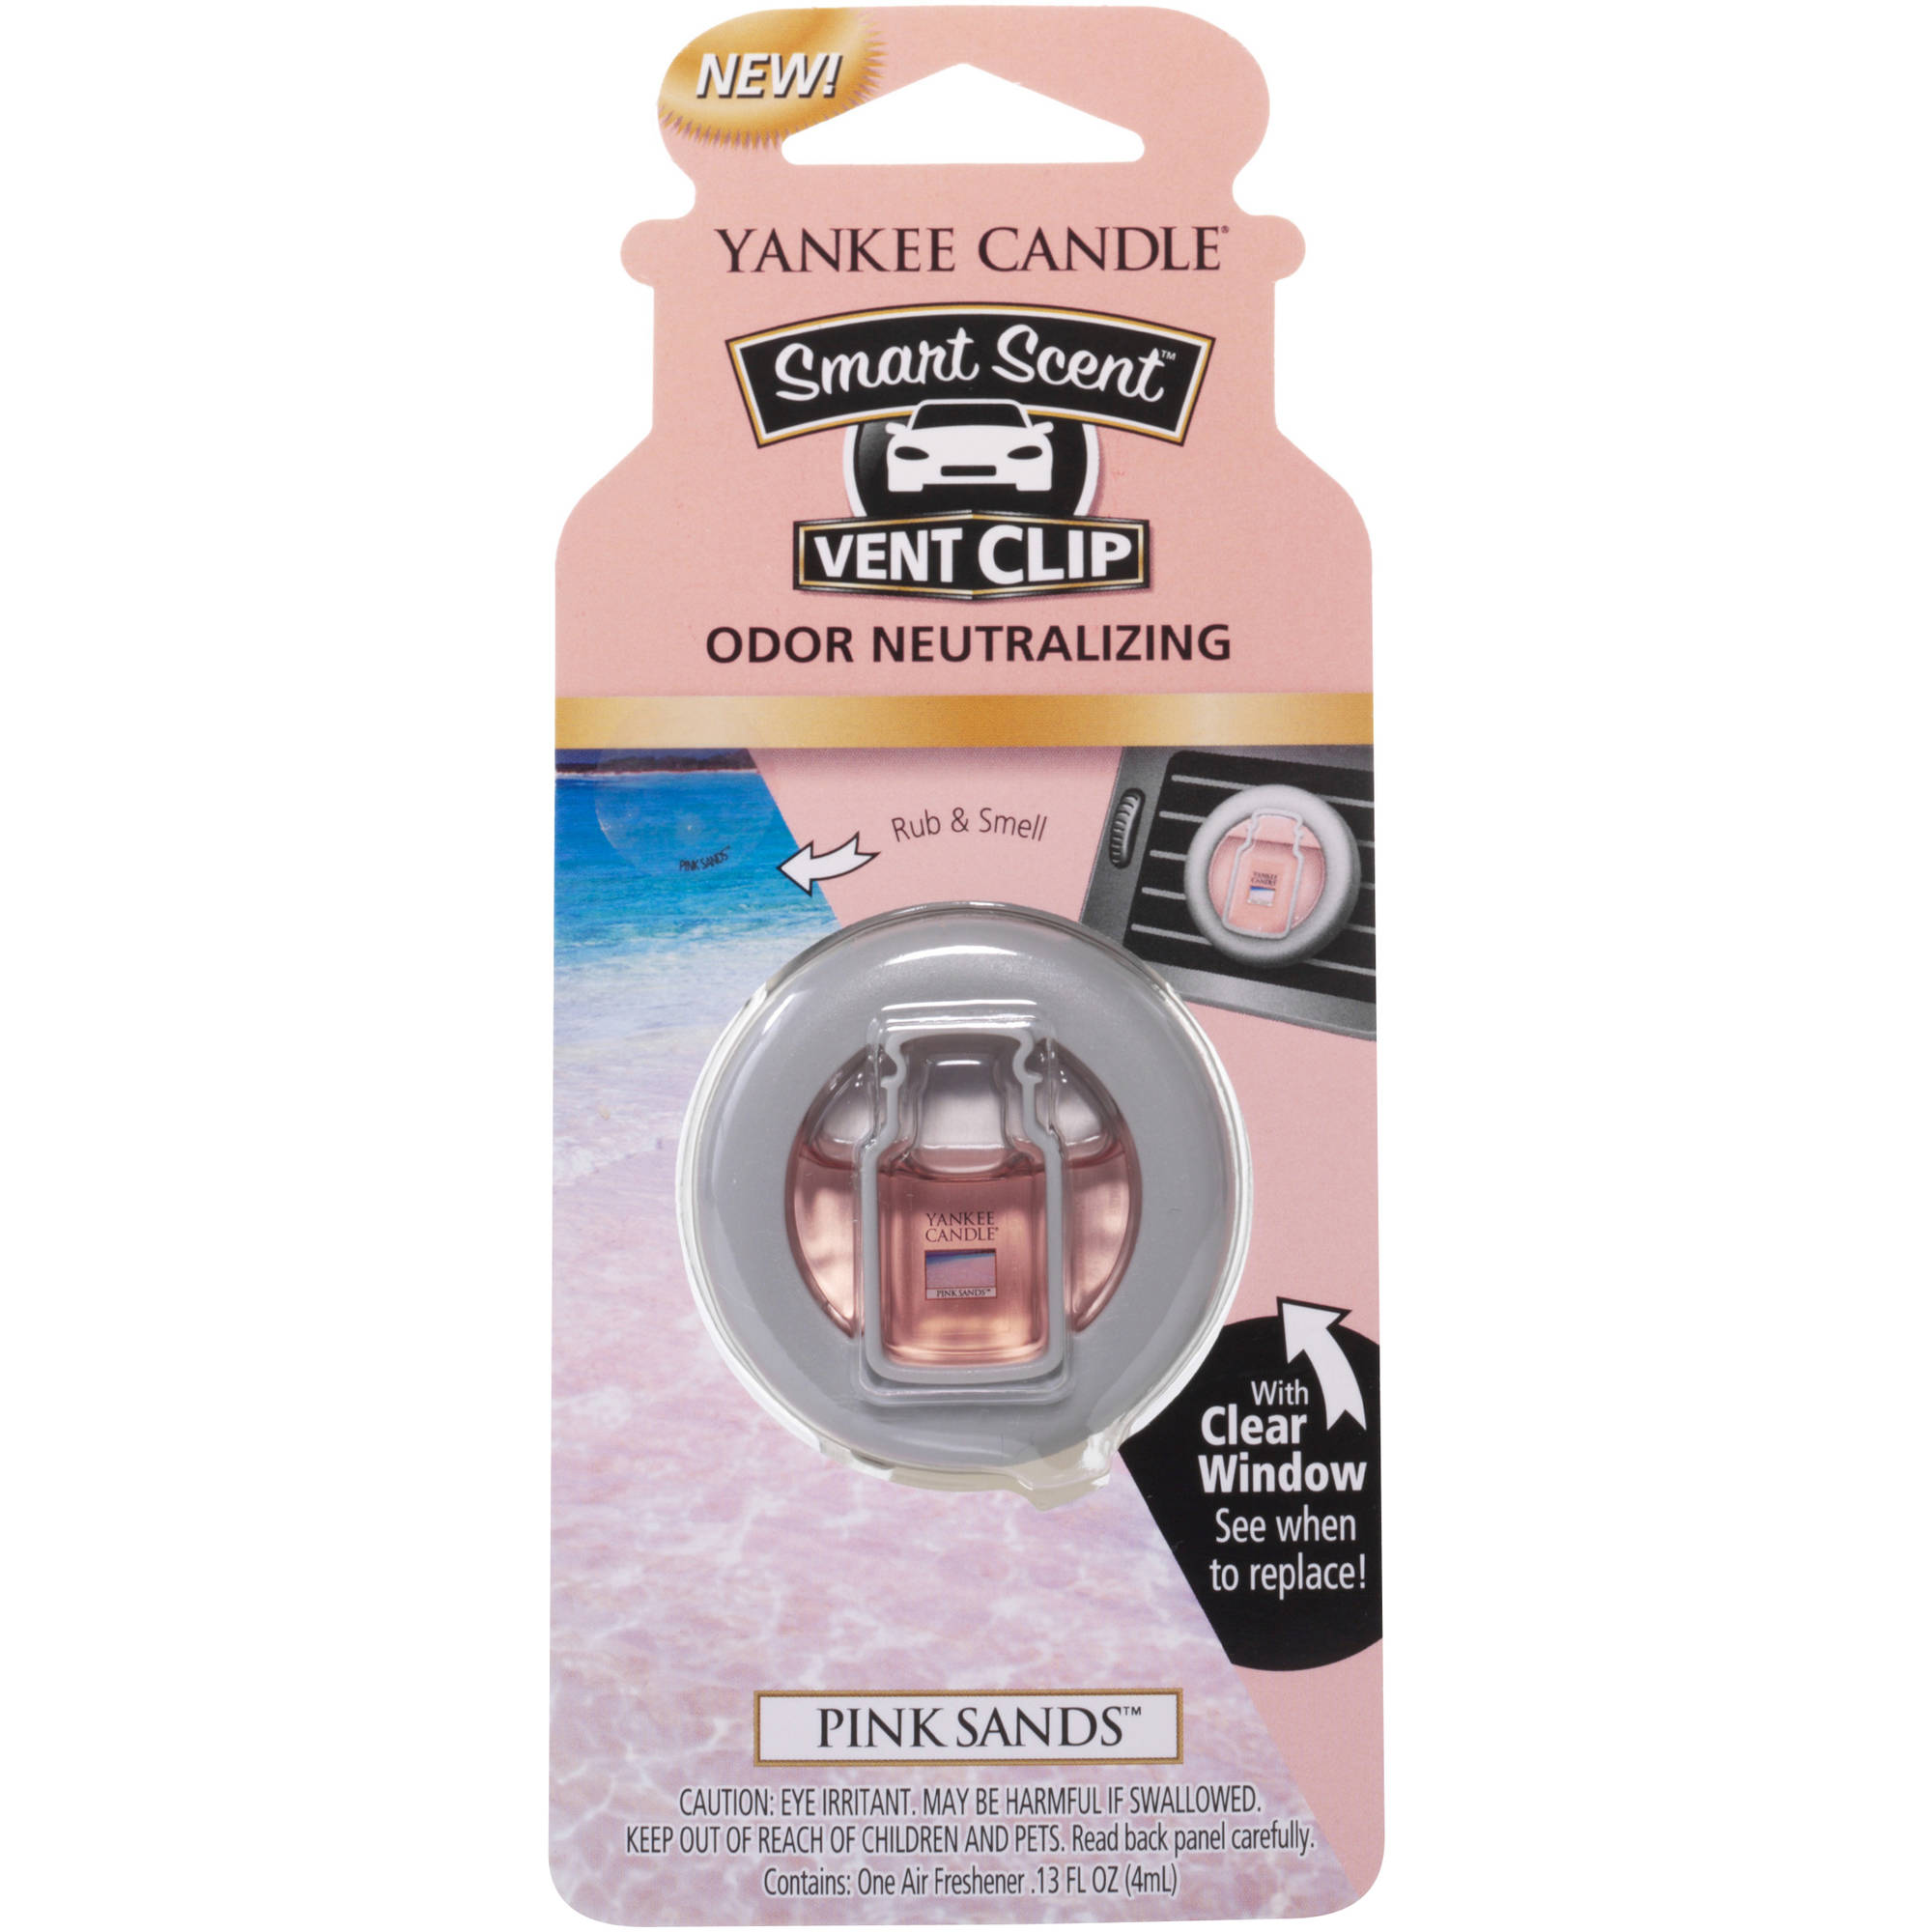 Yankee Candle Smart Scent Vent Clip Pink Sands Air Freshener, 0.13 fl oz